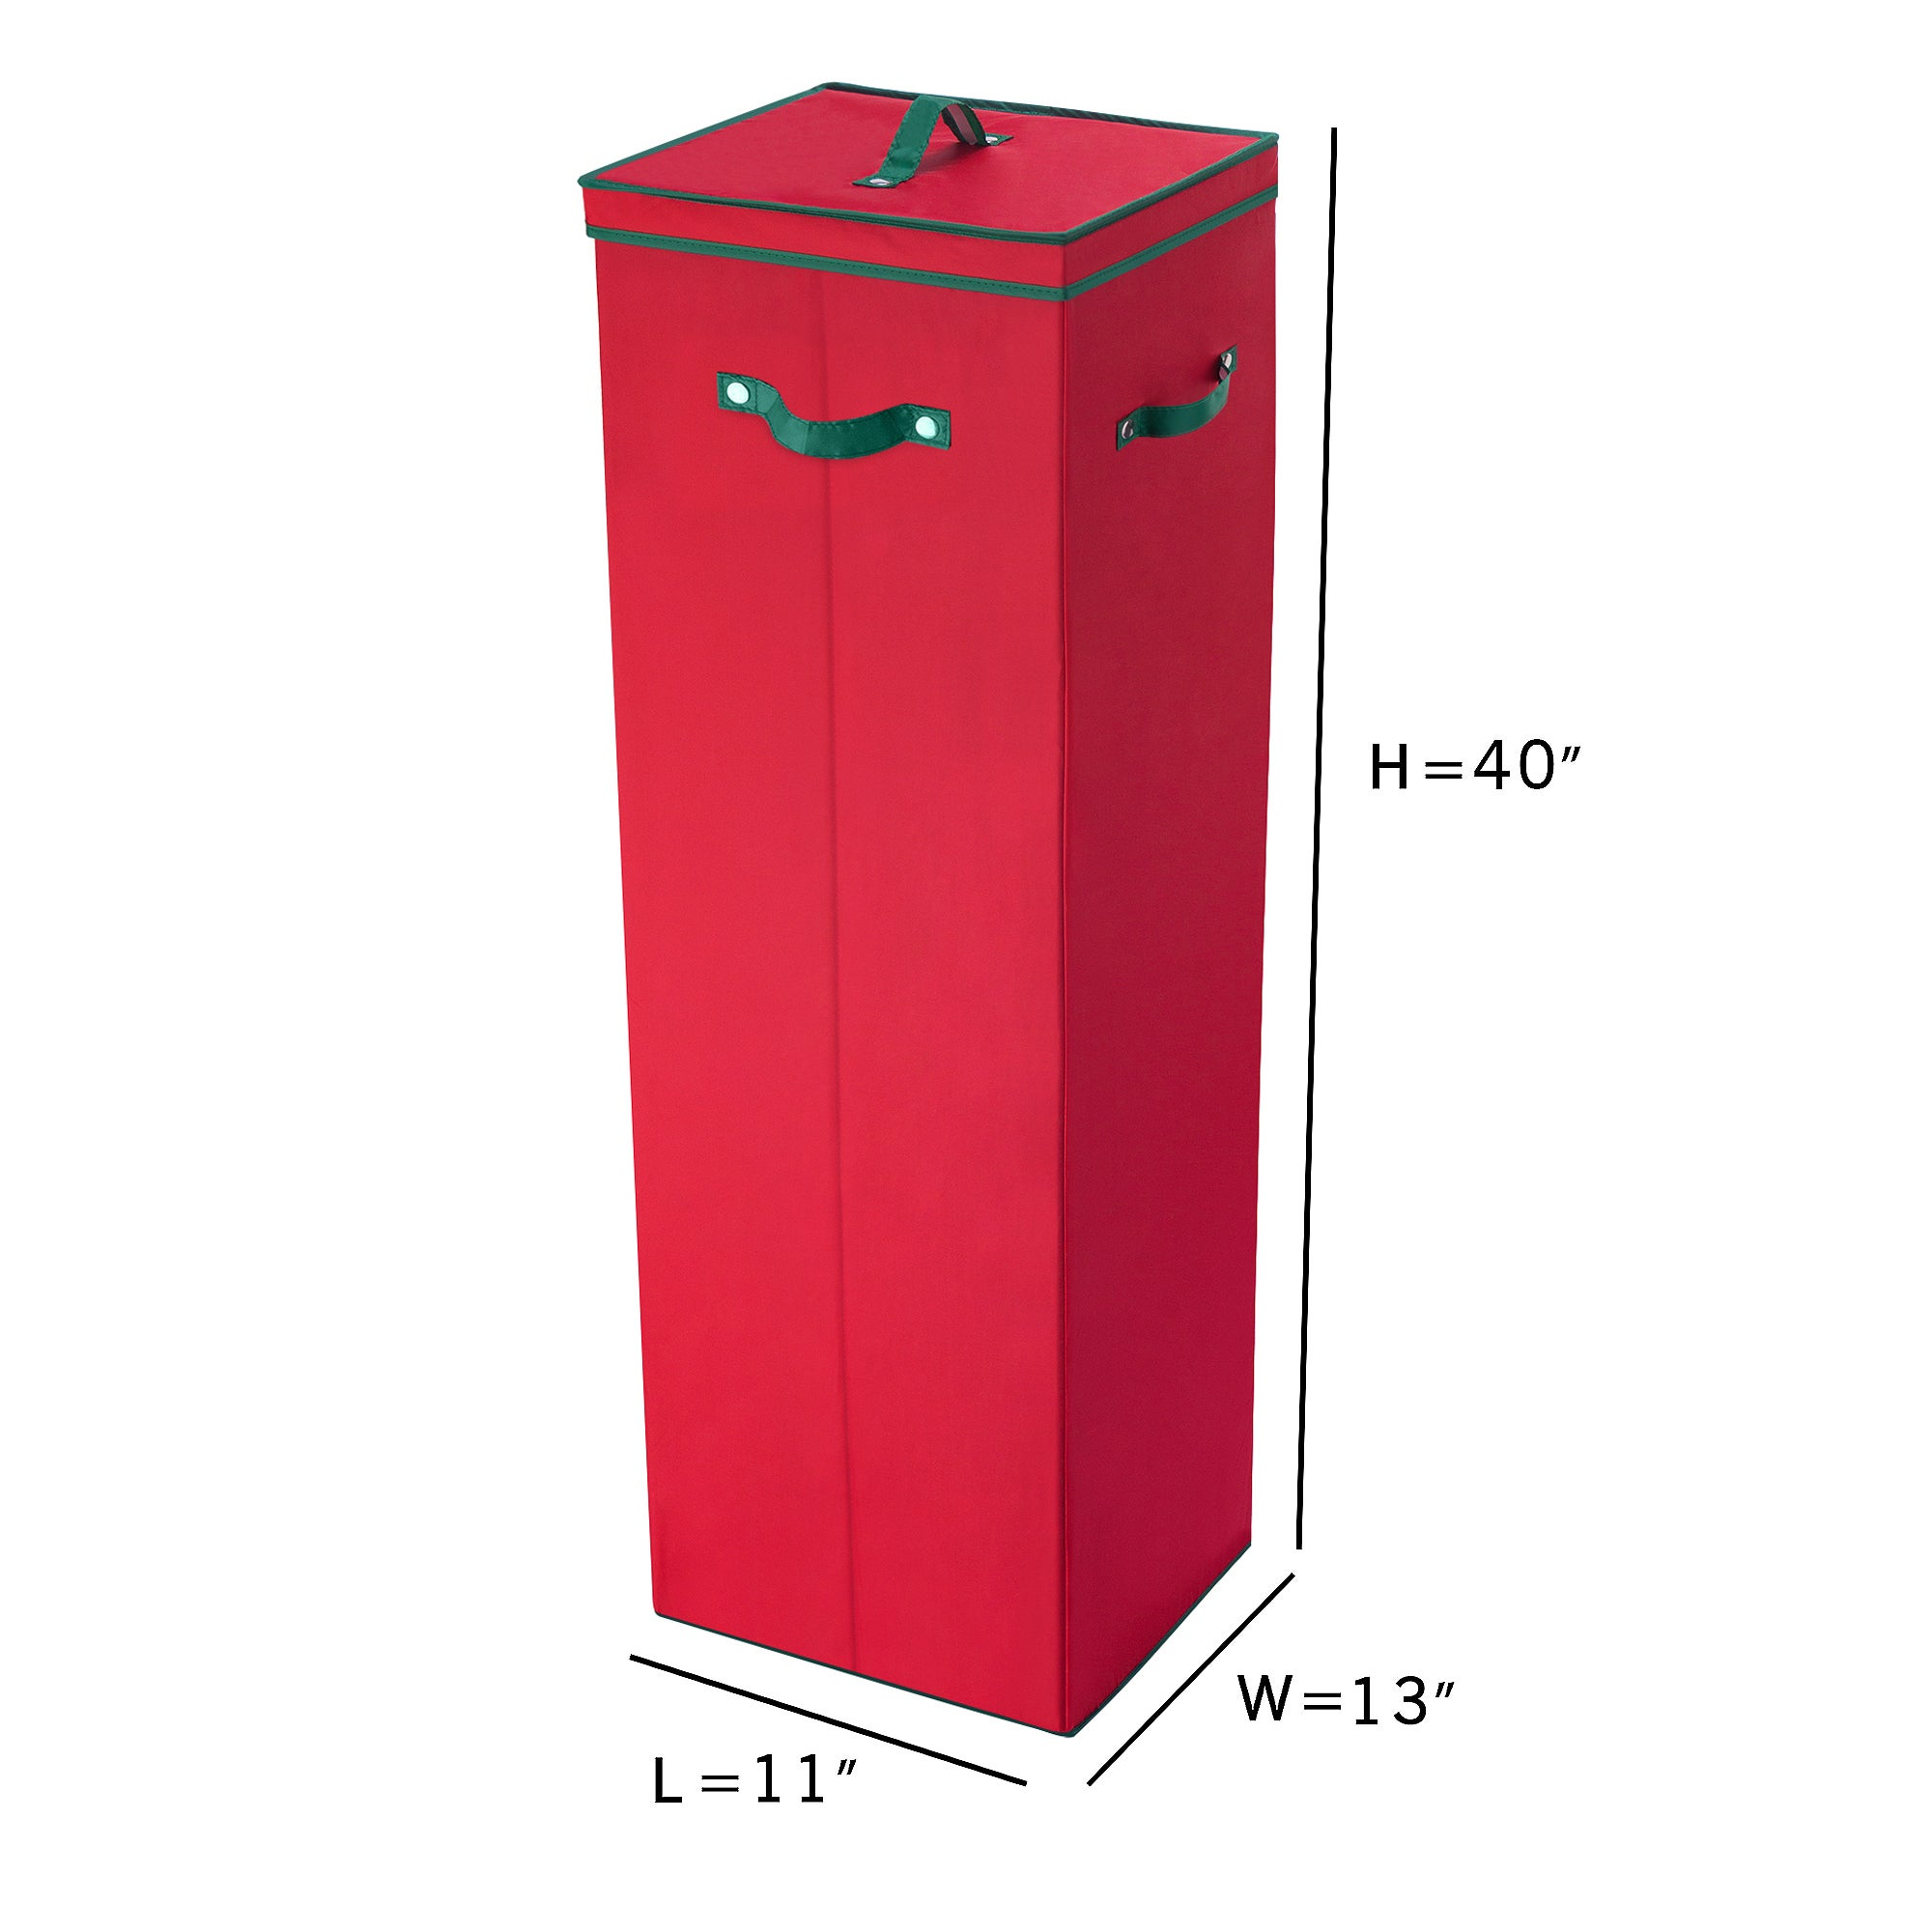 Charmant Shop Elf Stor Red 40 Inch Tall Wrapping Paper Storage Box With Lid   Free  Shipping On Orders Over $45   Overstock.com   13435214